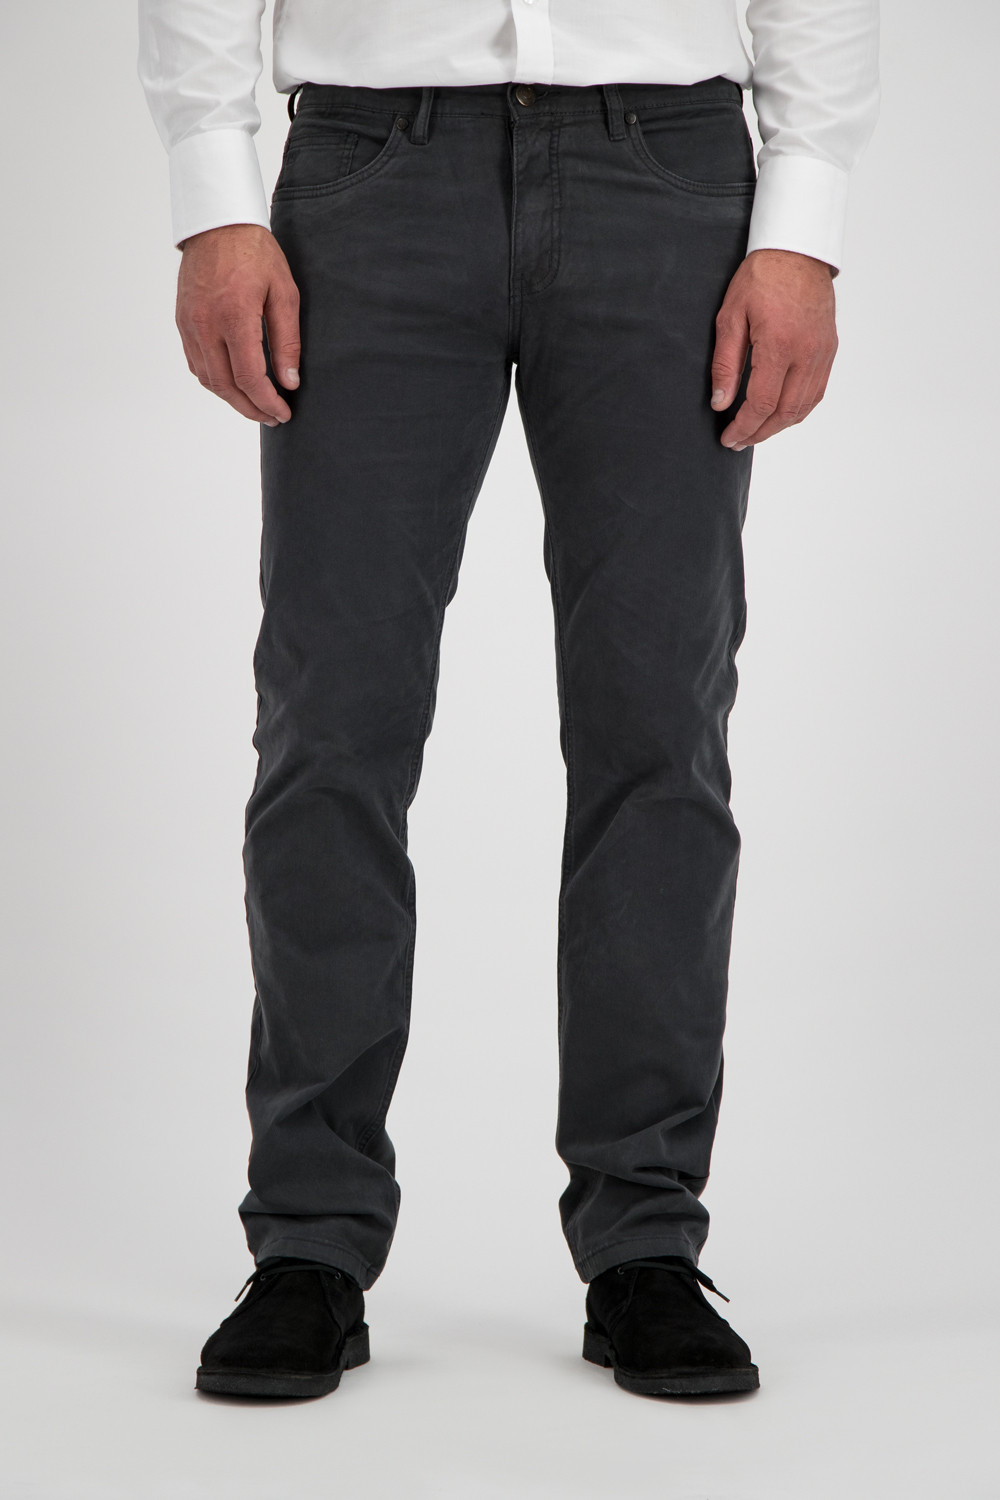 247 Jeans Palm T60 Grey iron